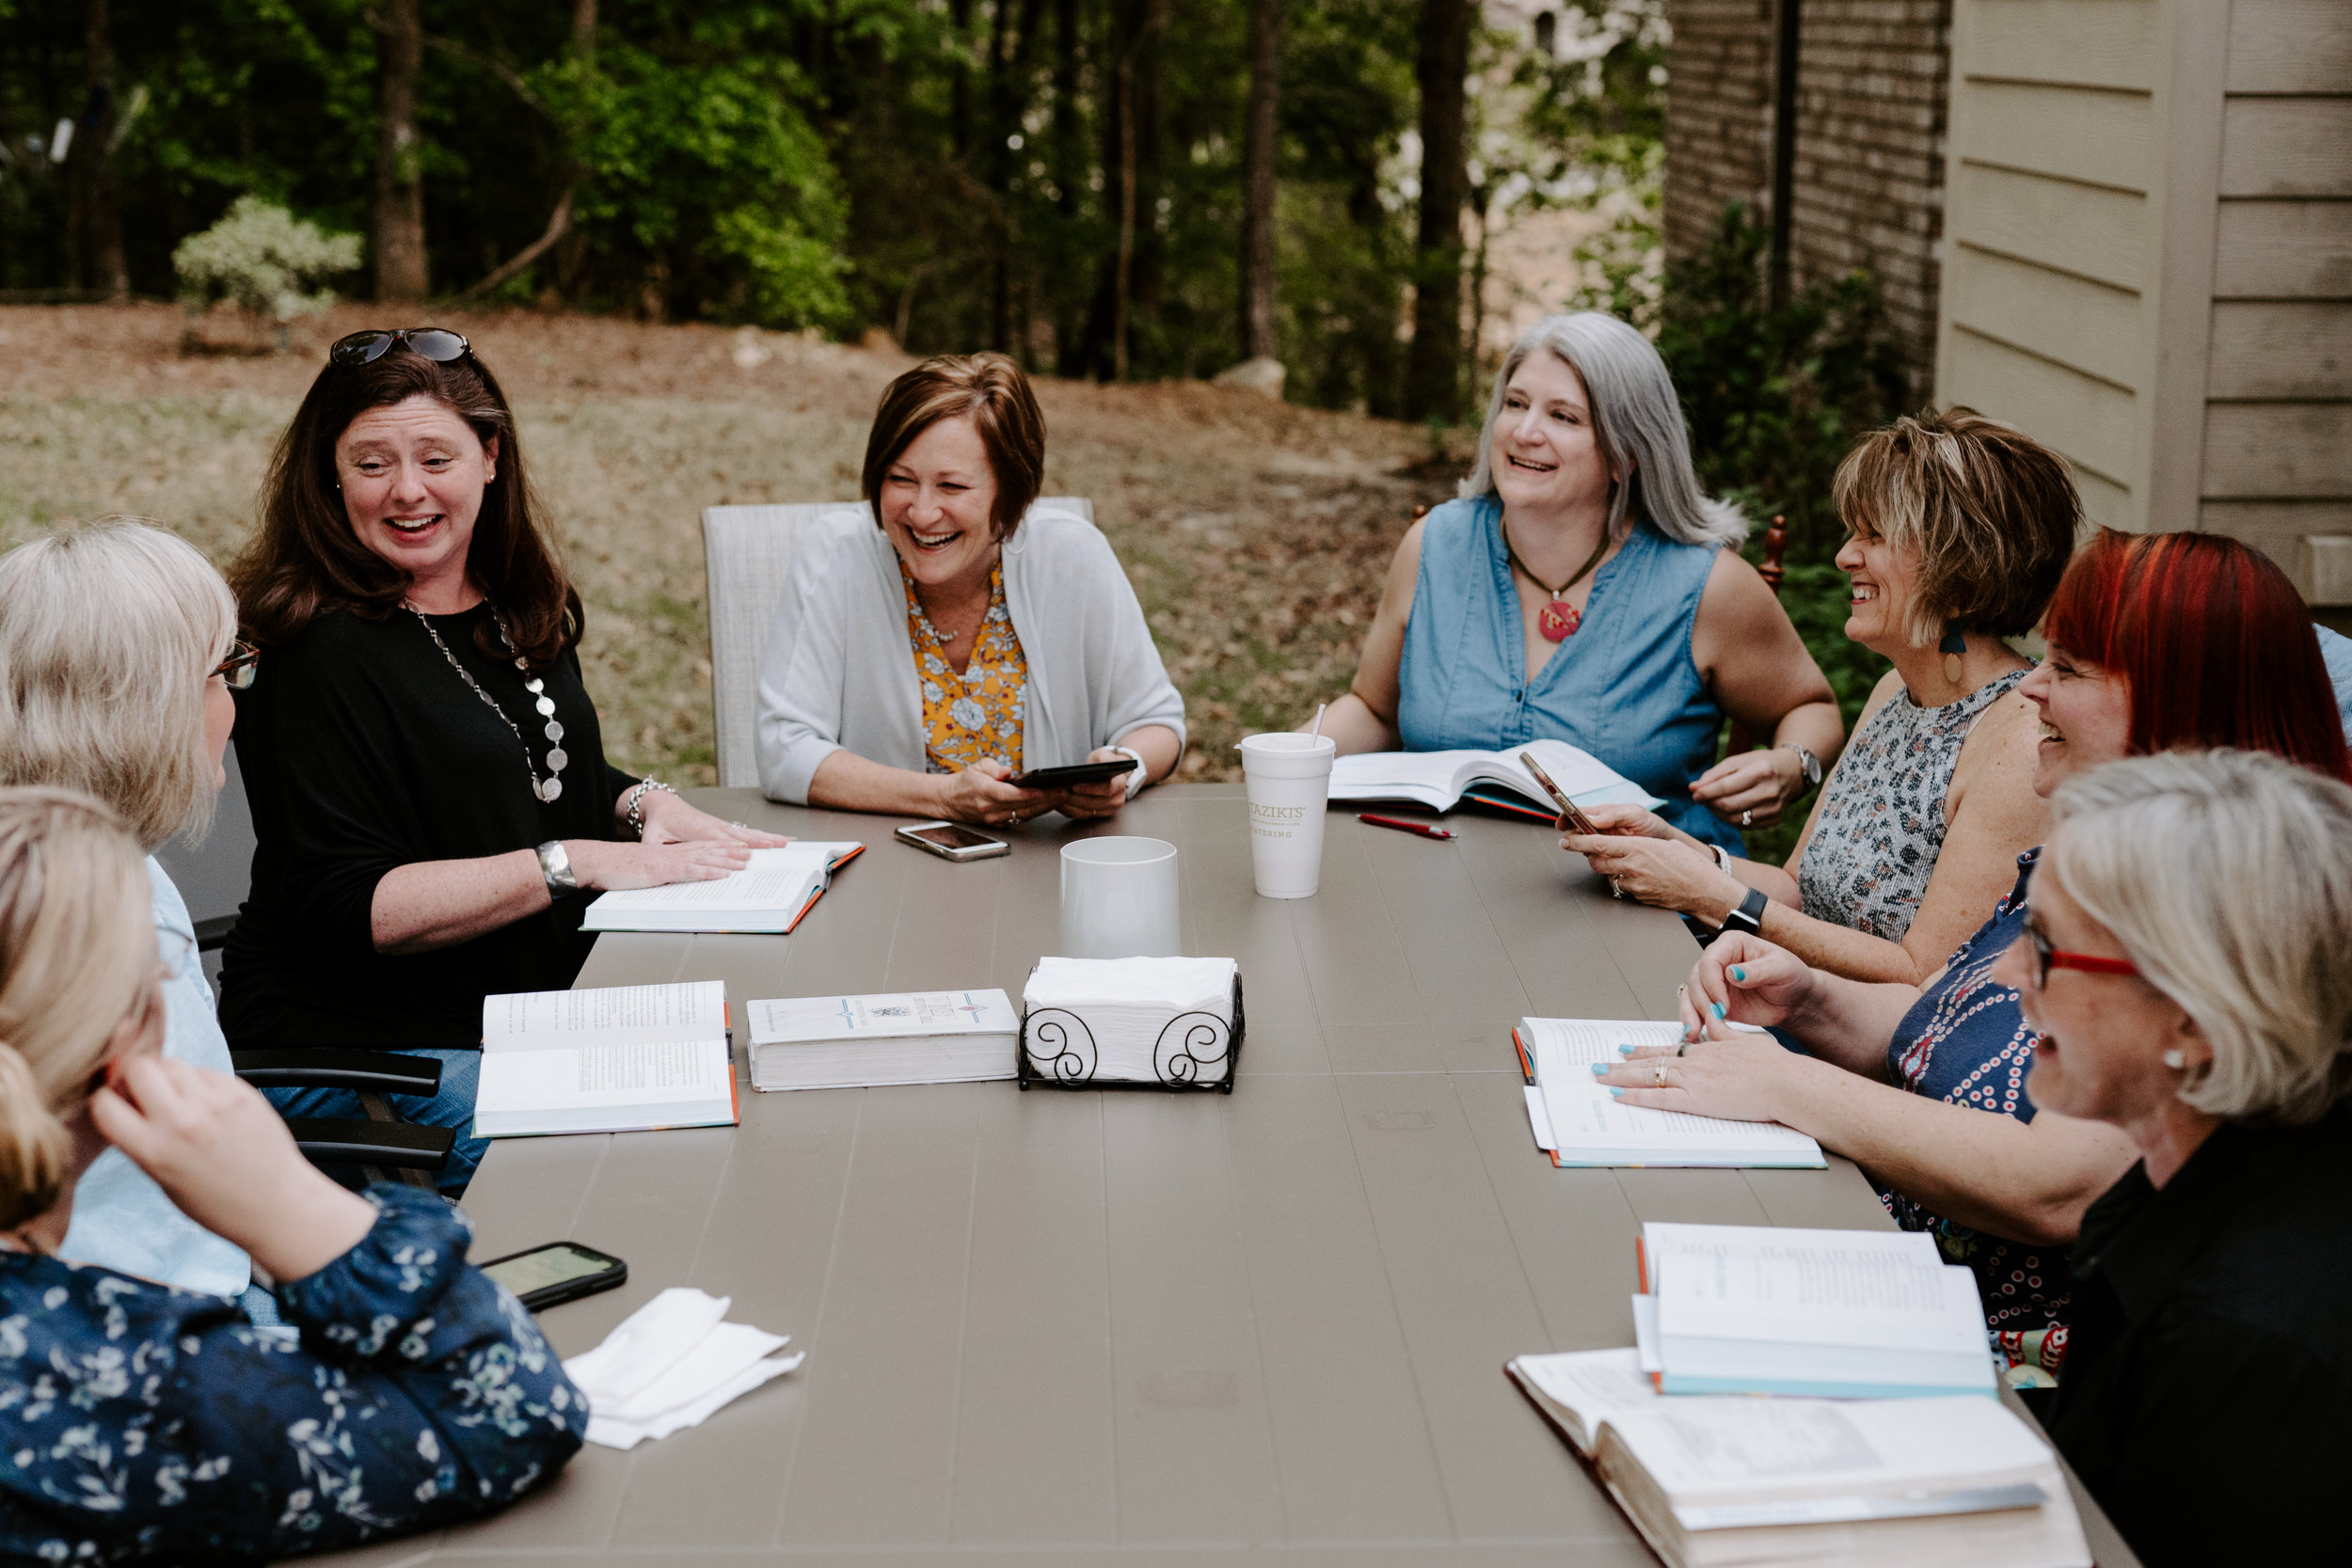 Groups - Here at Cornerstone, we believe that you aren't meant to walk in your faith alone. Community Groups are 8-week long groups based on similar walks of life, hobbies, and interests. If you are interested in hosting a Community Group of your own, contact suzanne@cornerstonebuzz.org for more info!